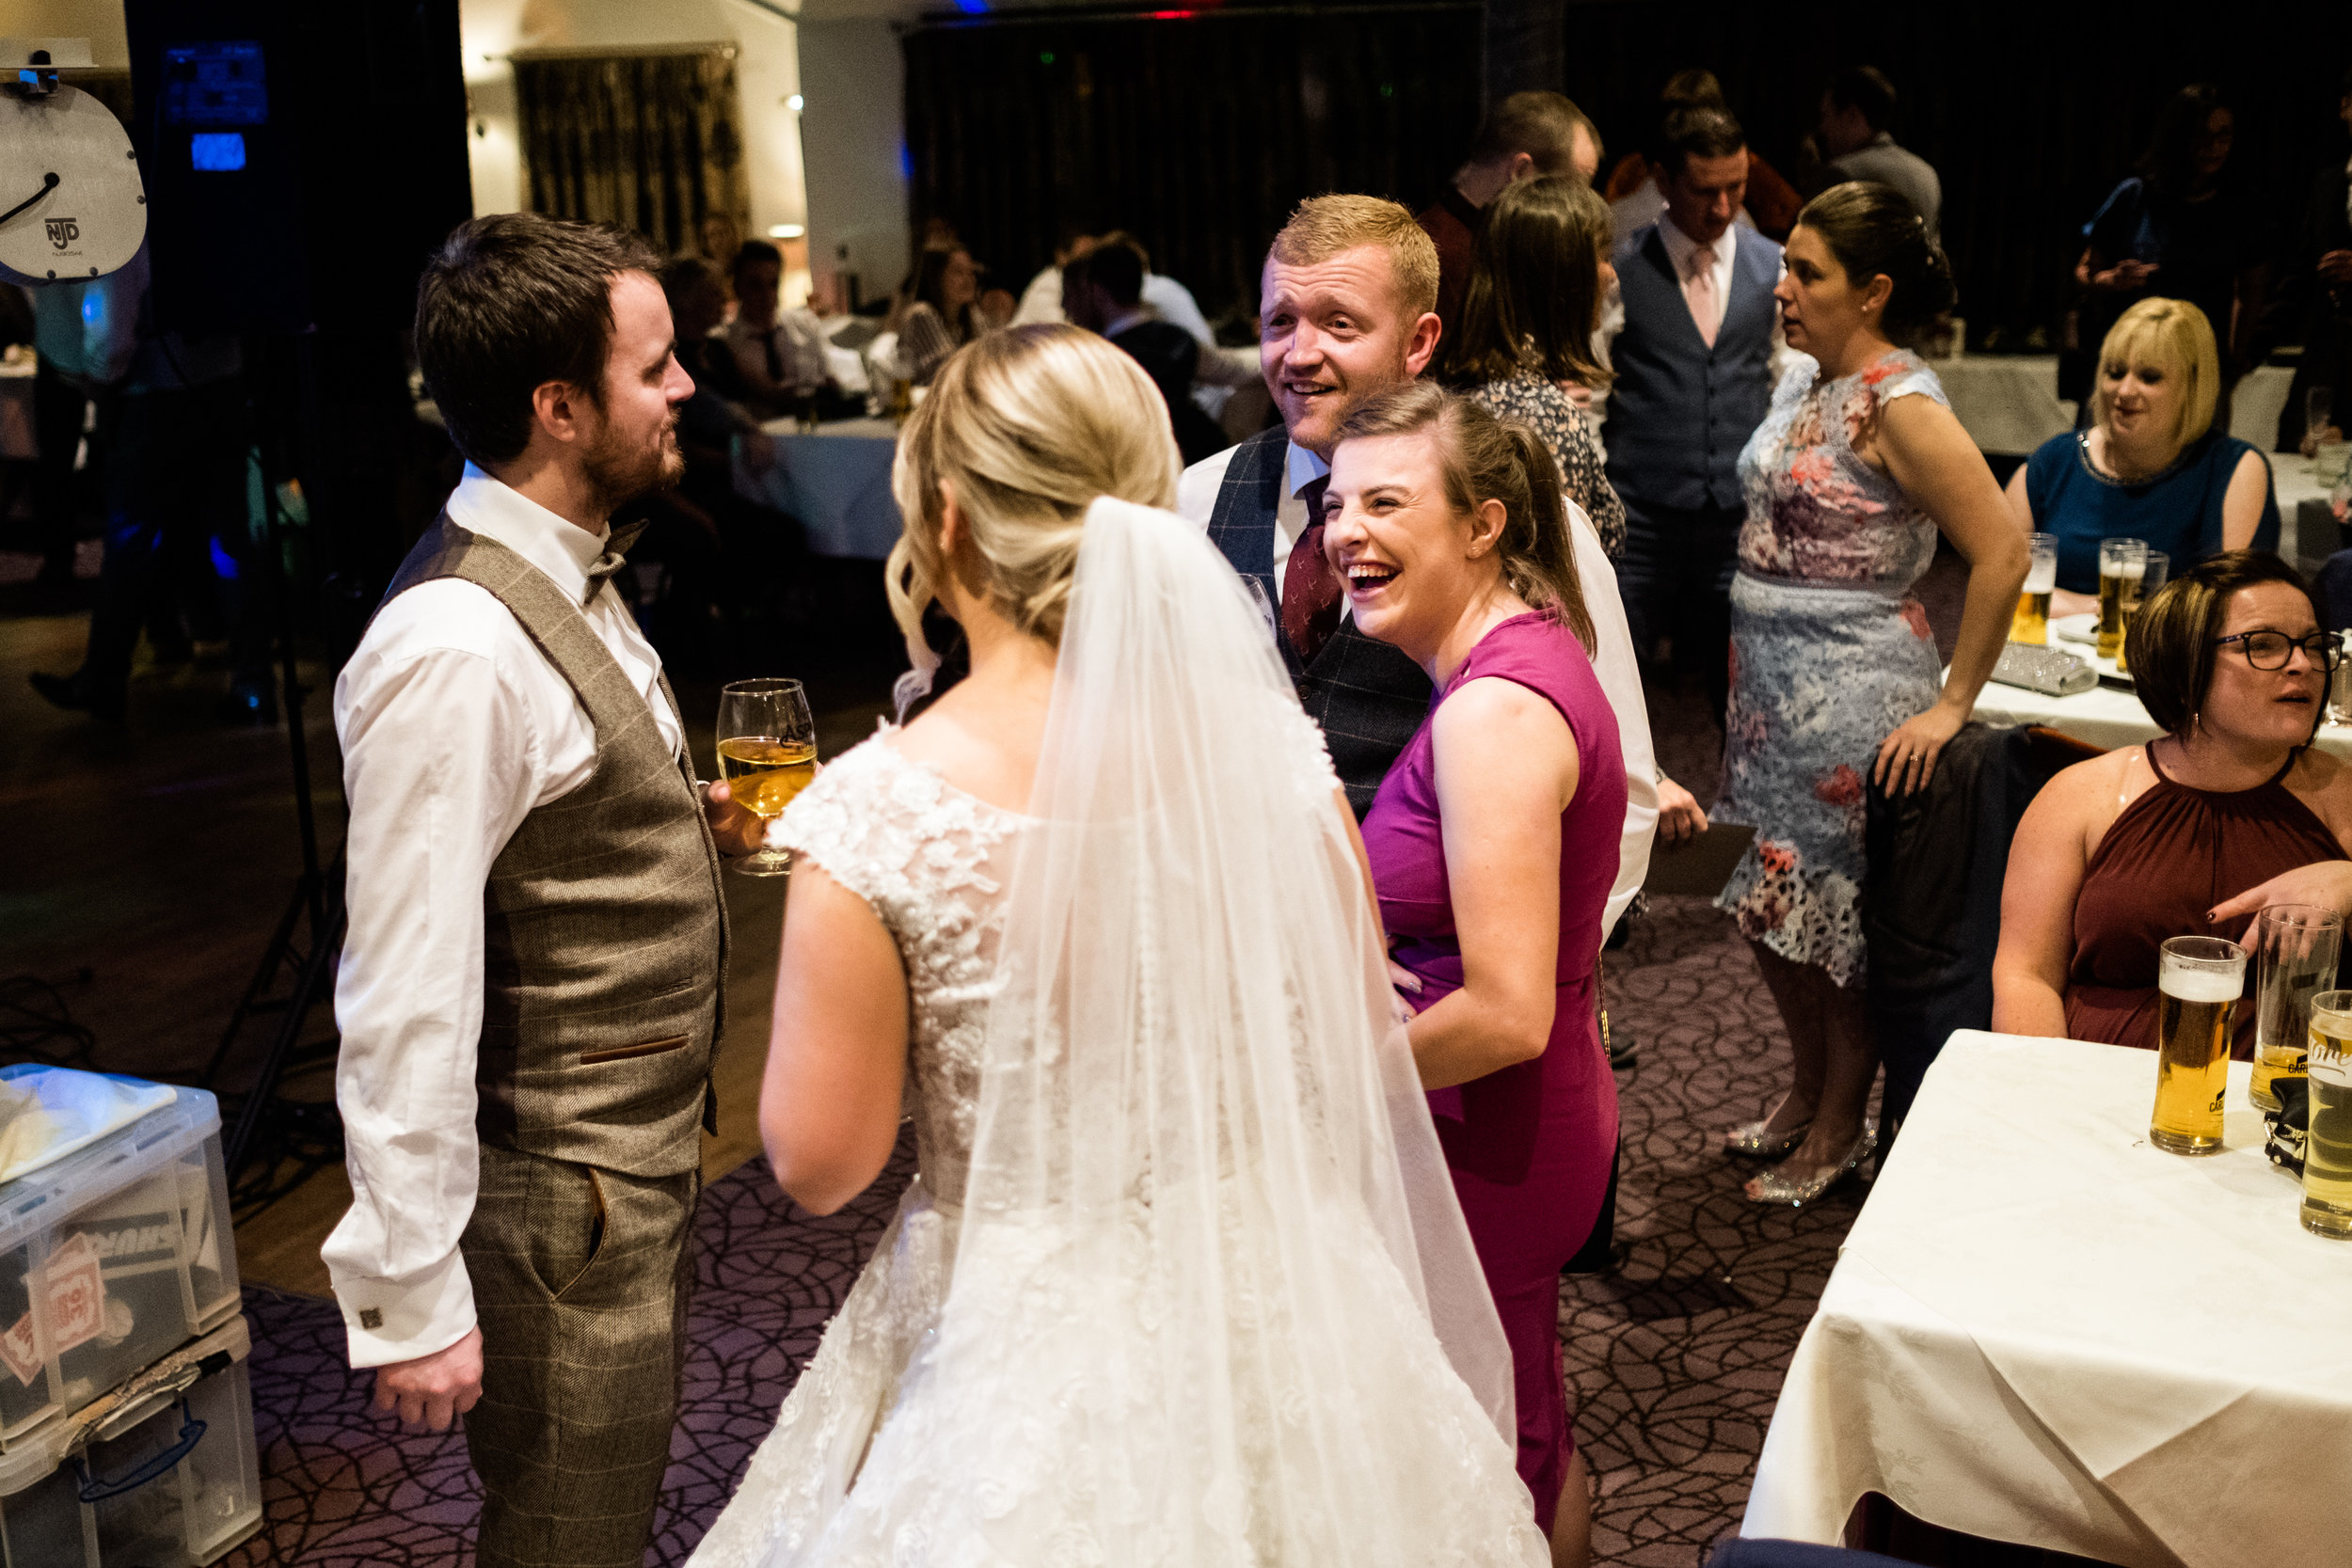 Autumn Wedding Photography at The Three Horseshoes, Blackshaw Moor, Staffordshire Moorlands - Jenny Harper-53.jpg